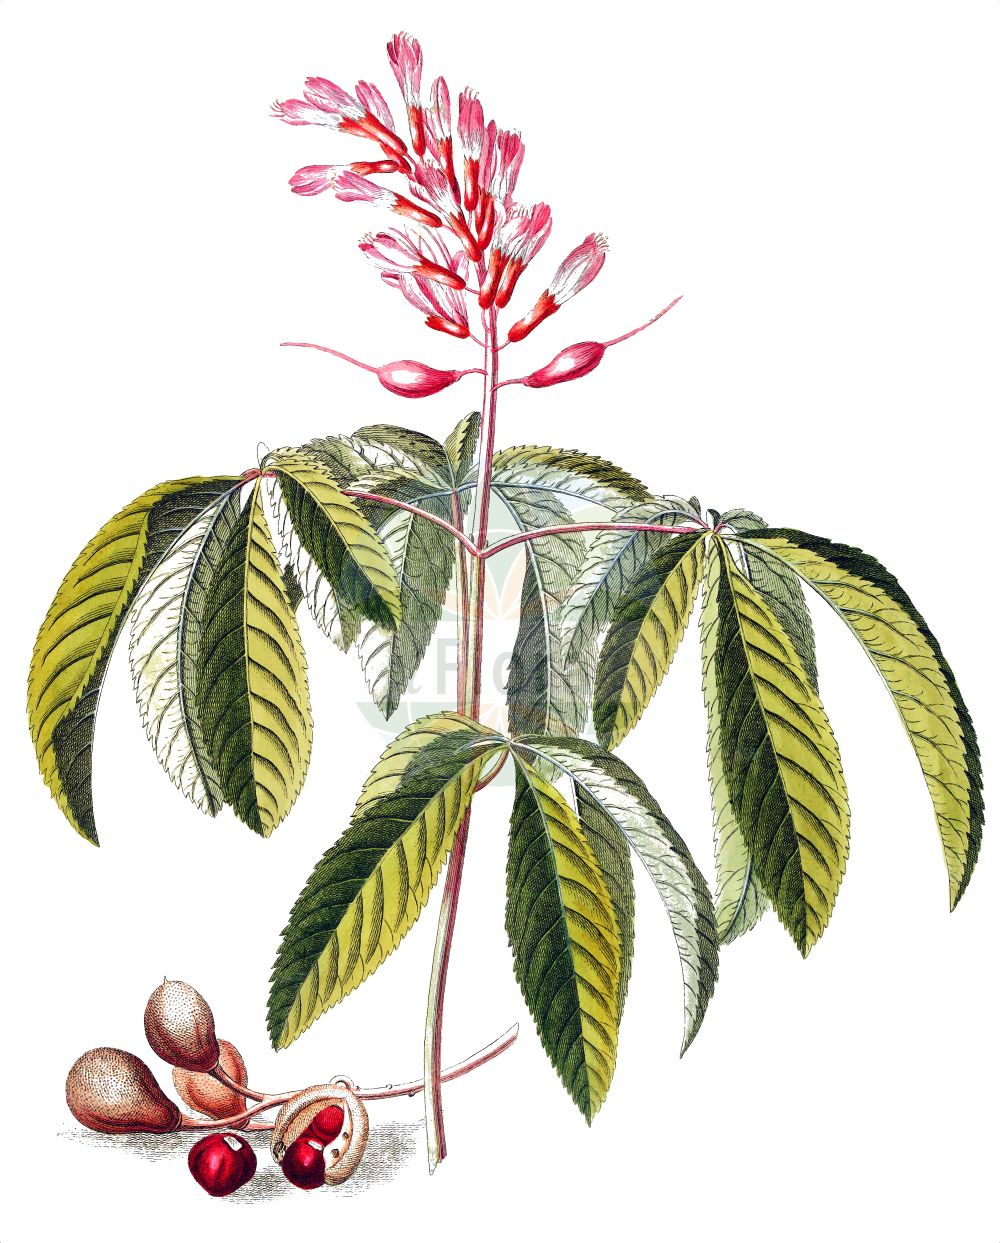 Historische Abbildung von Aesculus pavia. Das Bild zeigt Blatt, Bluete, Frucht und Same. ---- Historical Drawing of Aesculus pavia.The image is showing leaf, flower, fruit and seed.(Aesculus pavia,Aesculus pavia,Aesculus,Rosskastanie,Horse-chestnut,Sapindaceae,Seifenbaumgewaechse,Soapberry family,Blatt,Bluete,Frucht,Same,leaf,flower,fruit,seed,Ehret (1708-1780))